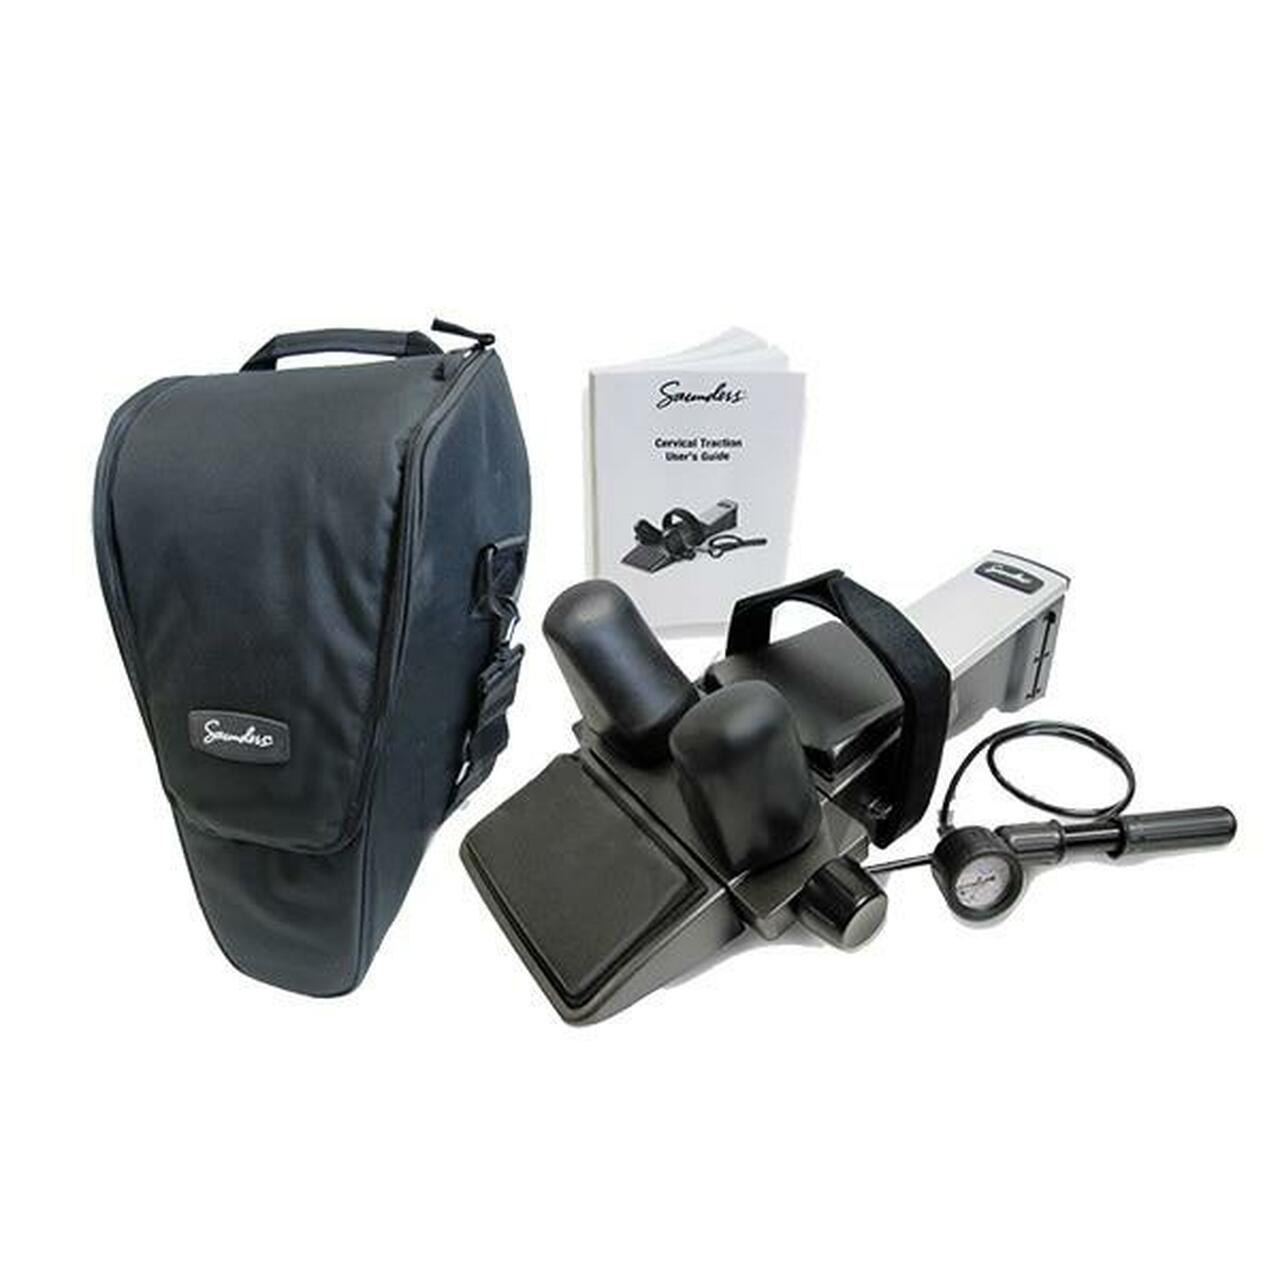 Saunders Cervical Traction Device With Case Free Shipping